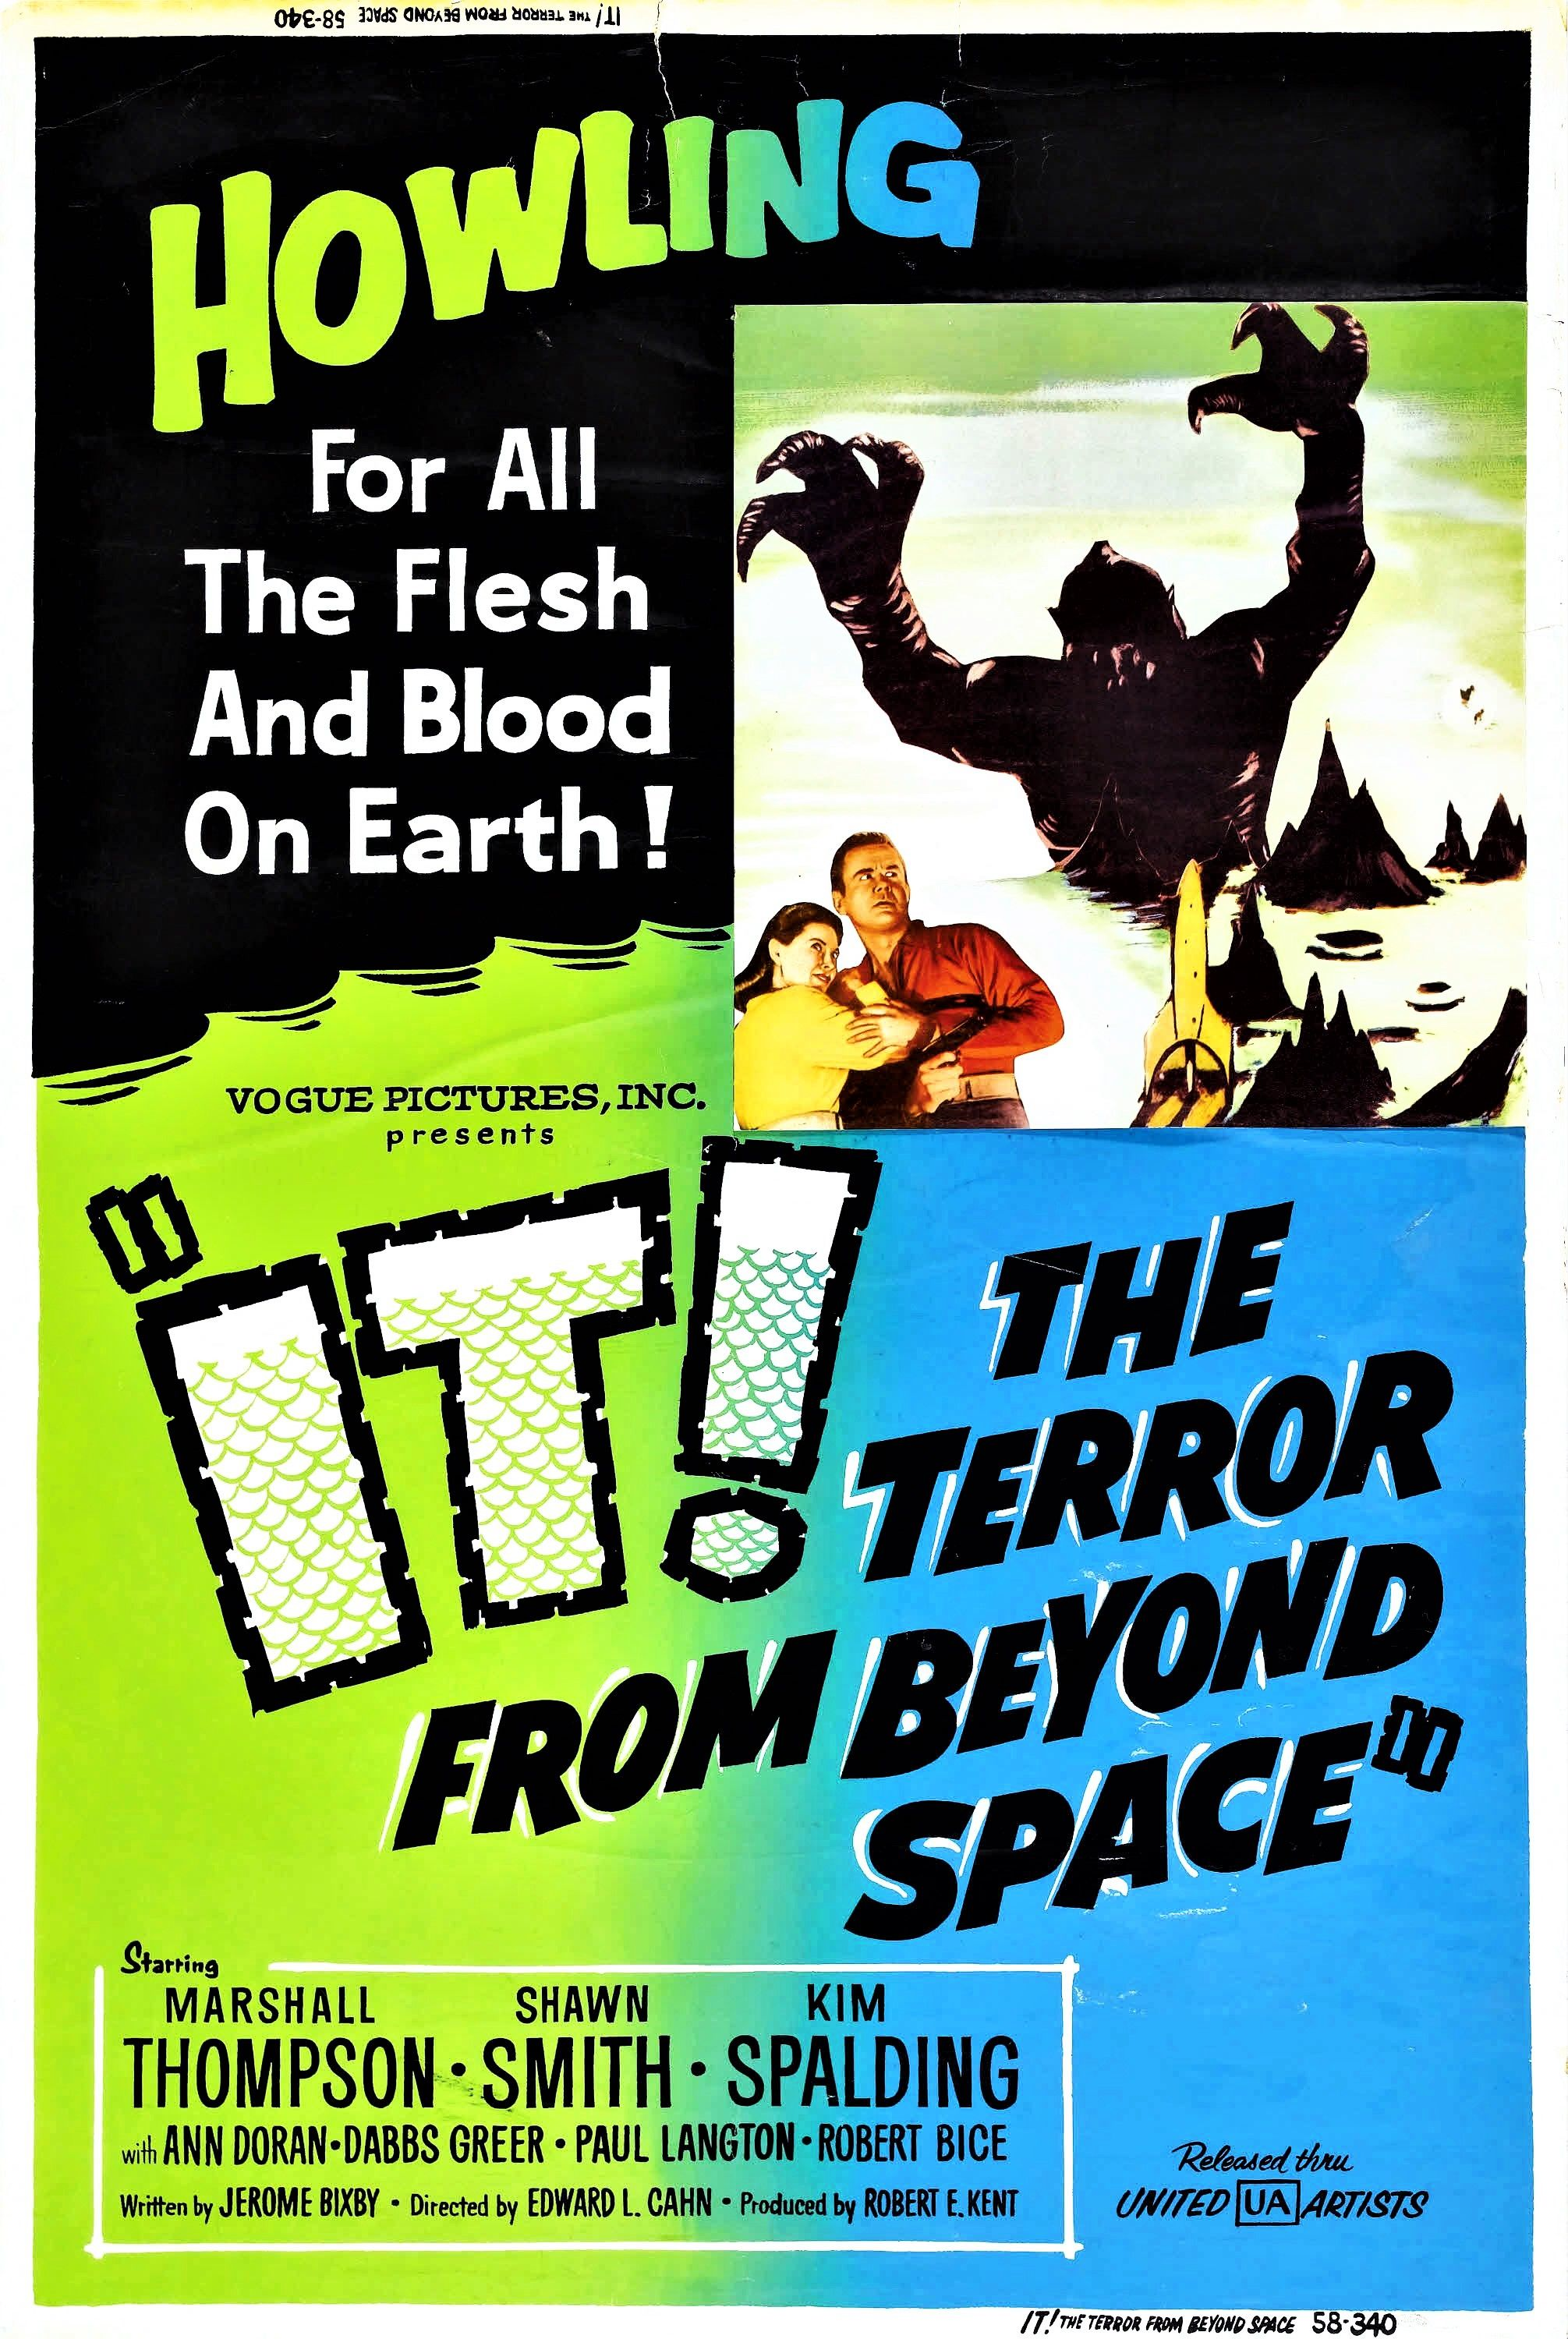 Film Classics Artown Series: Monsters From Outer Space: It the Terror From Beyond Space